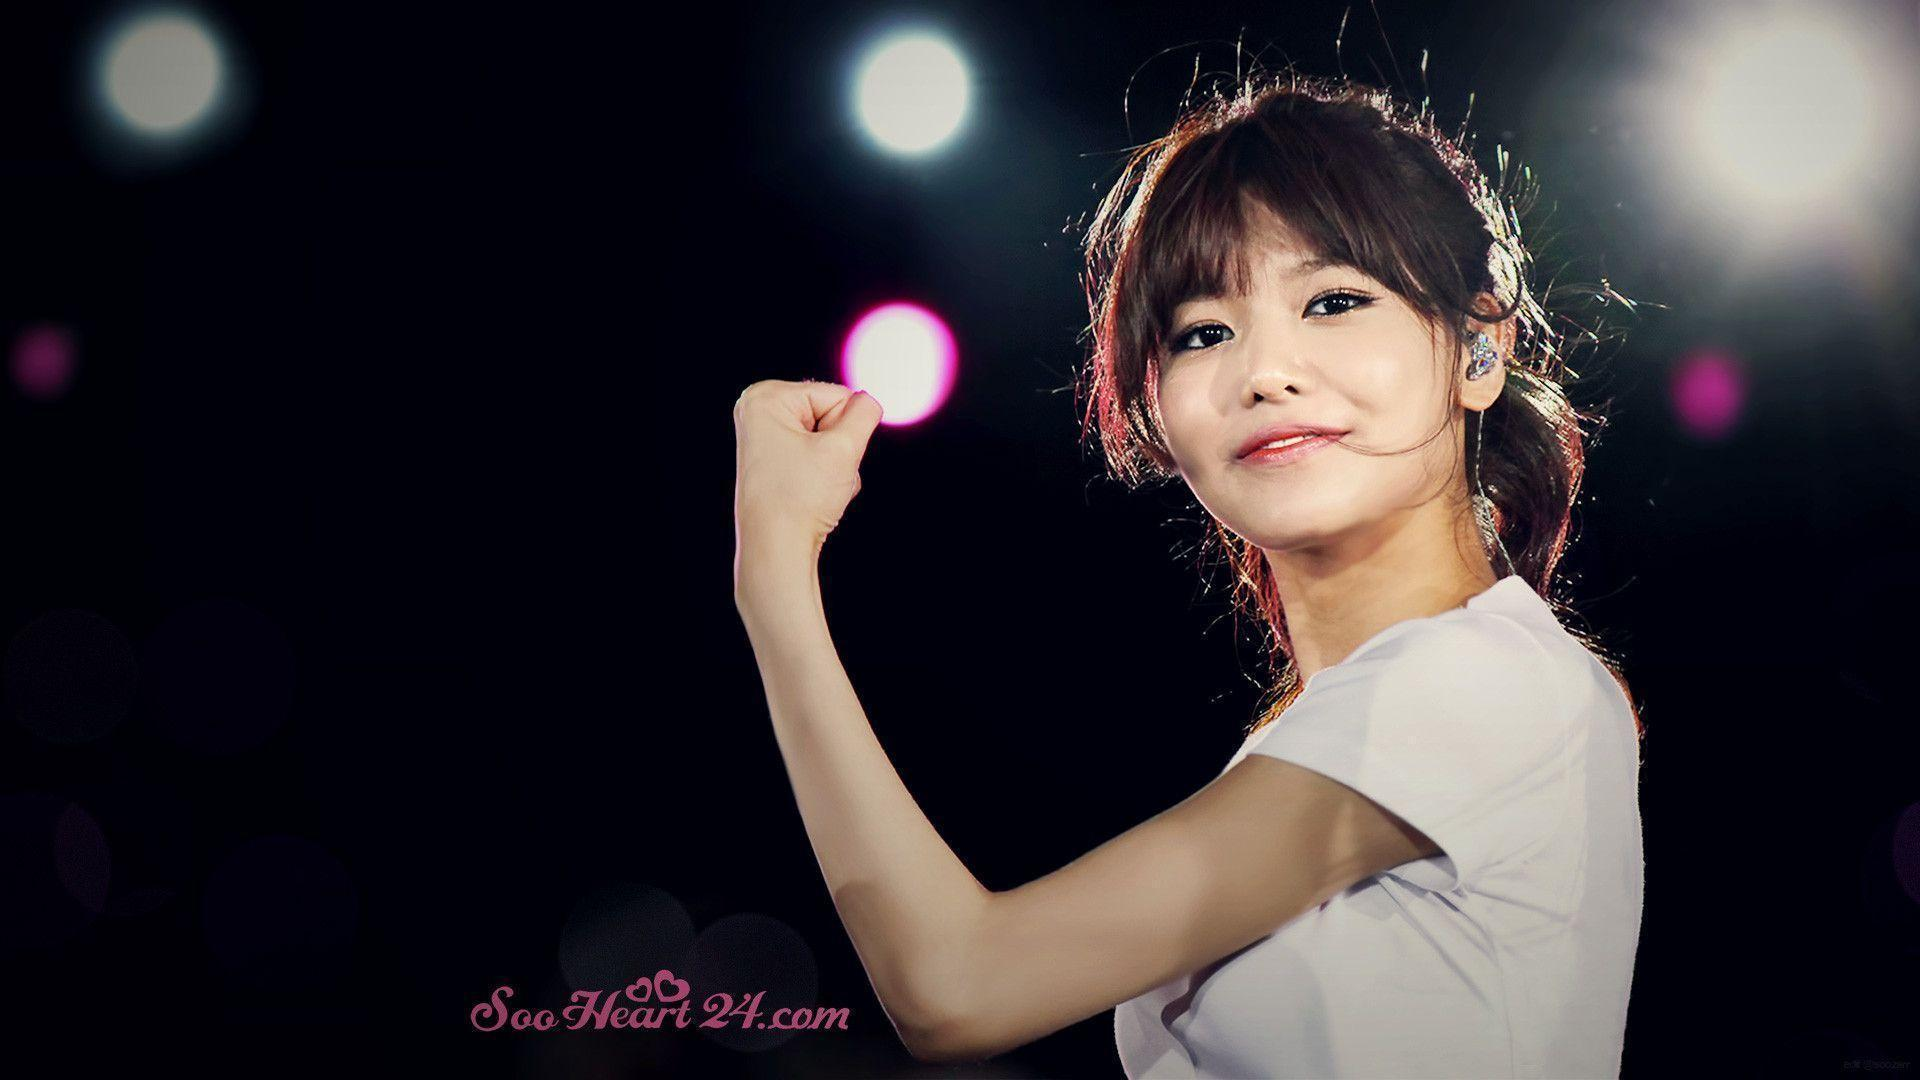 Sooyoung Wallpapers - Wallpaper Cave